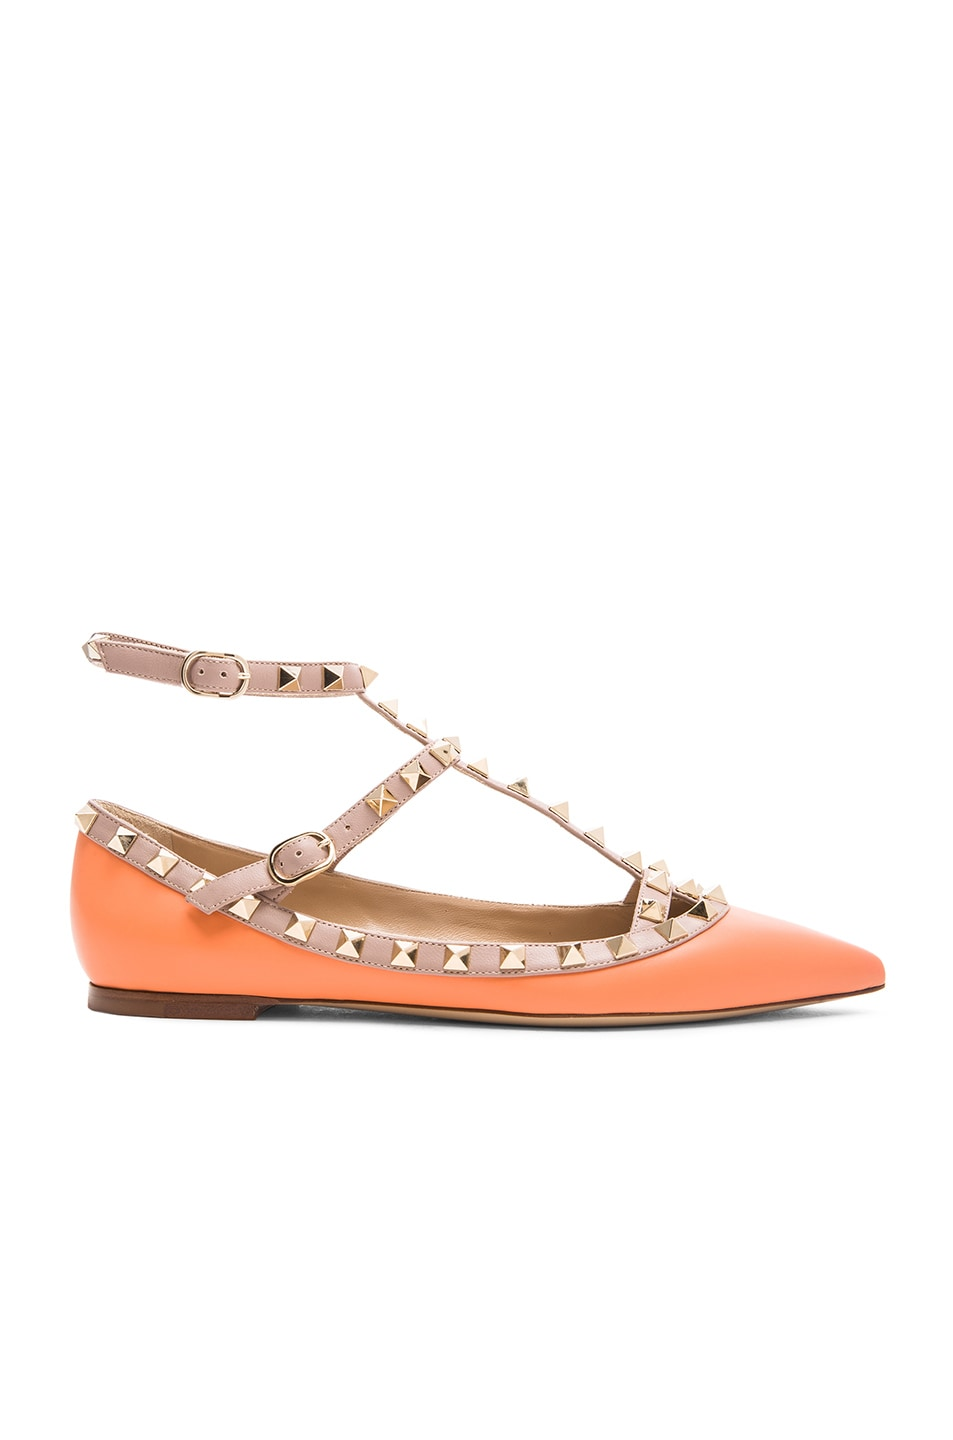 Image 1 of Valentino Rockstud Cage Flats in Melon Sorbet & Poudre